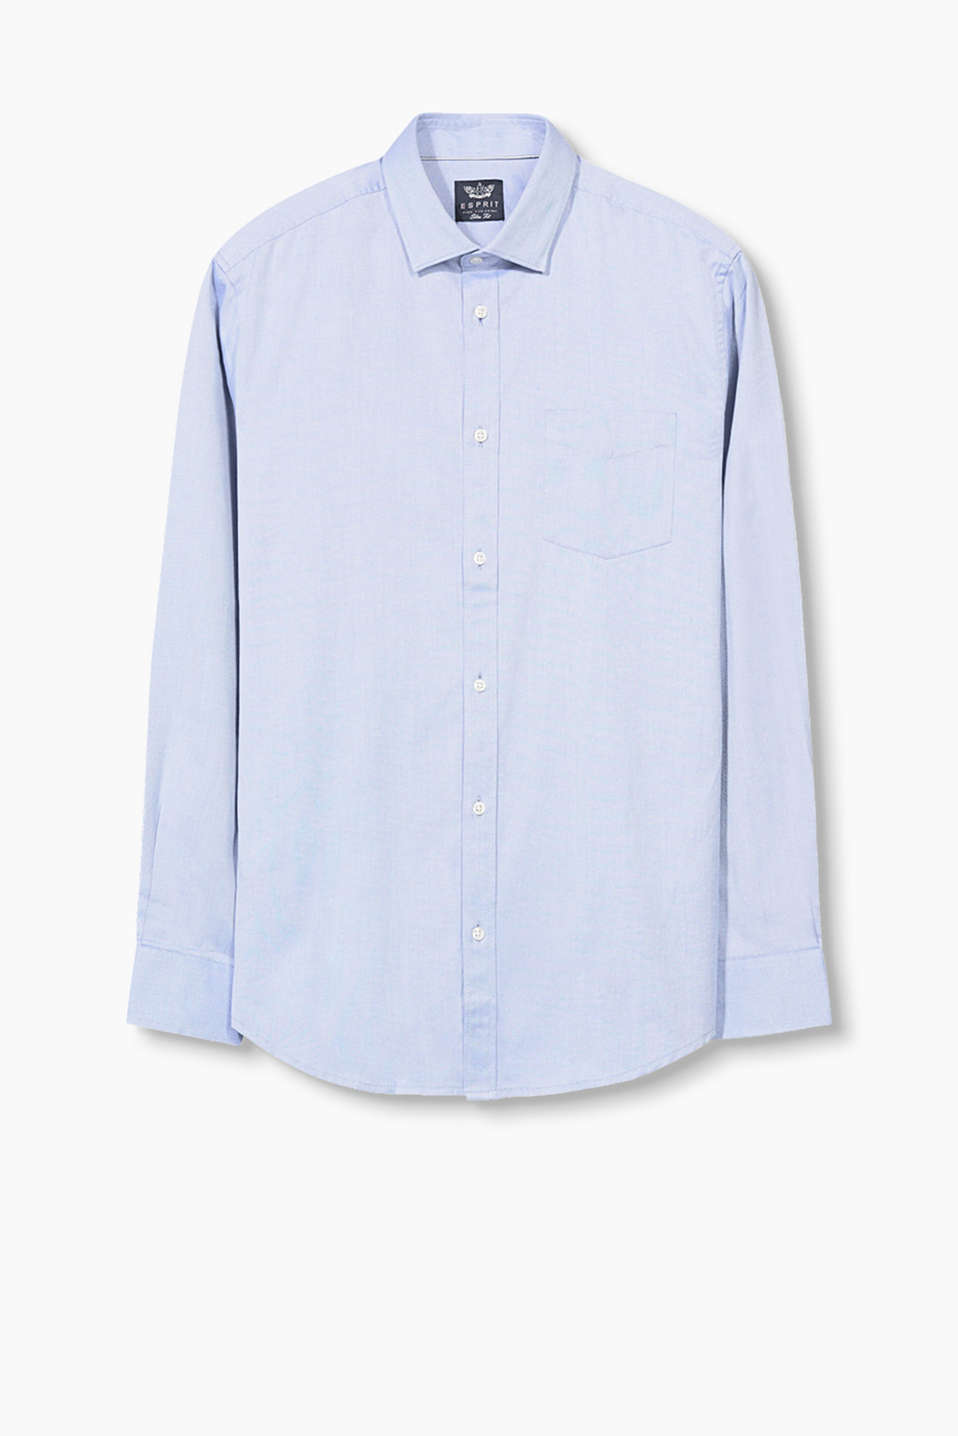 Textured easy-iron shirt made from pure cotton